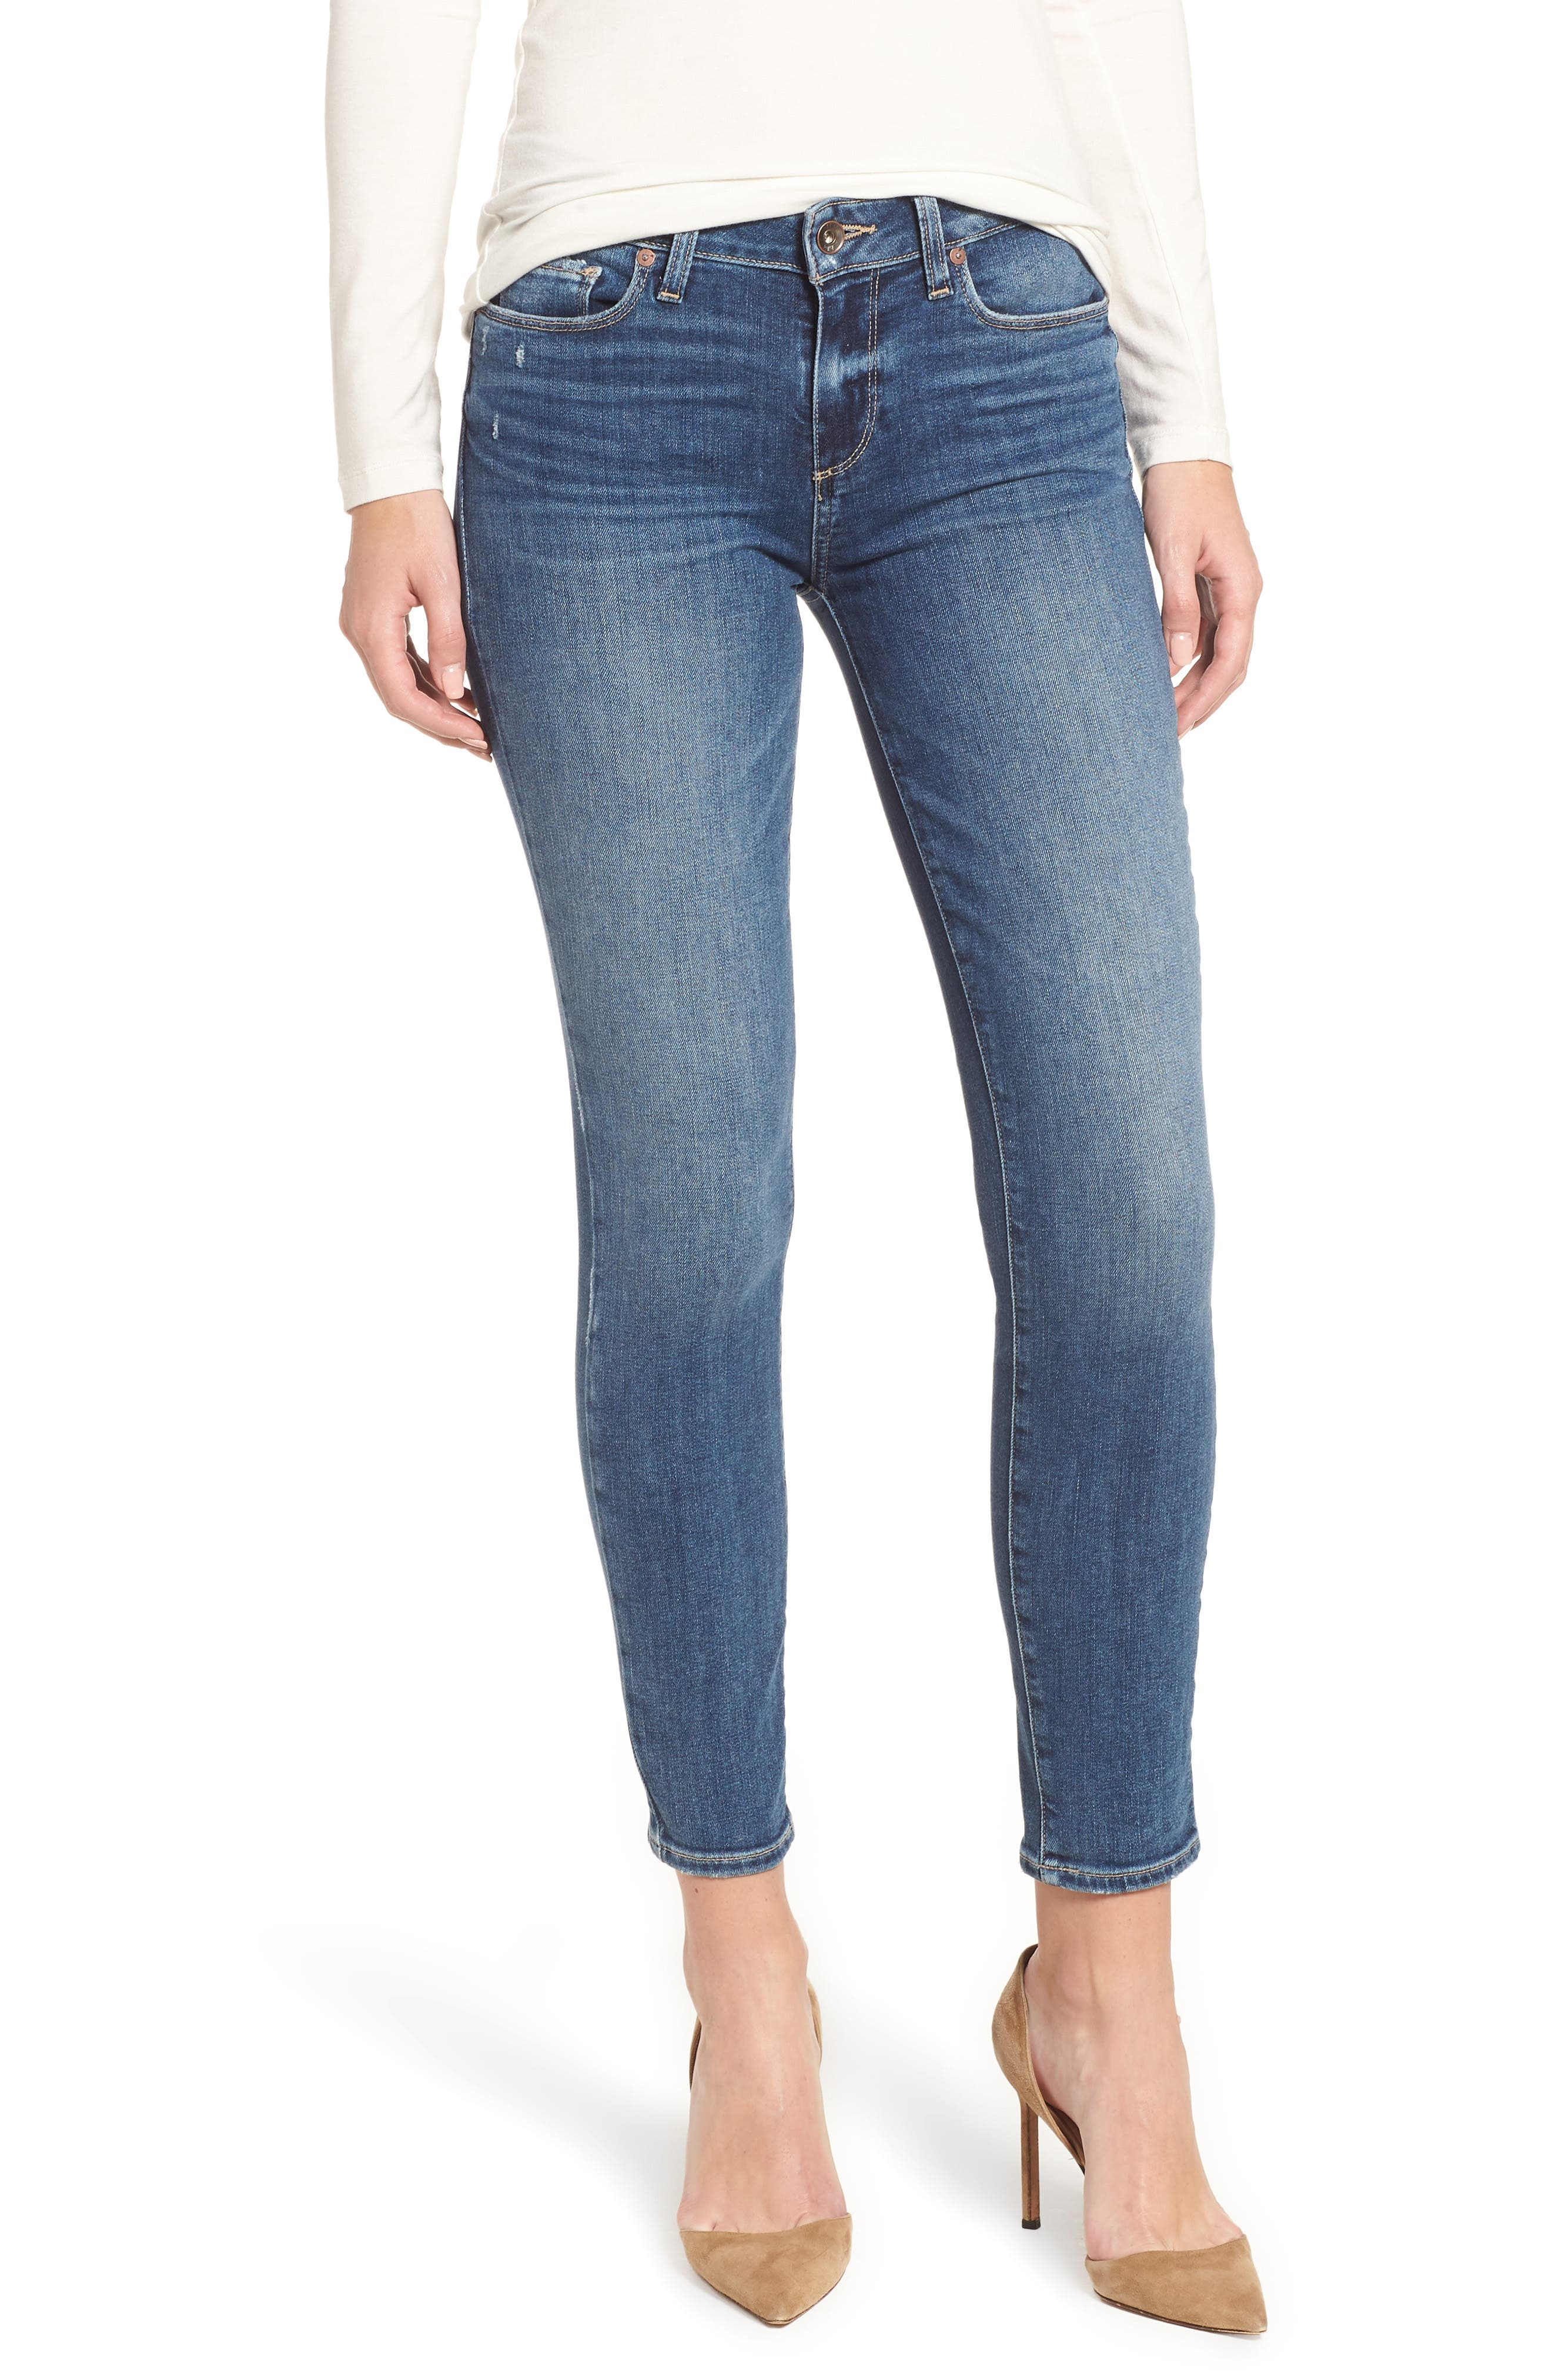 PAIGE Verdugo Ankle Skinny Jeans, Main, color, HANSEN